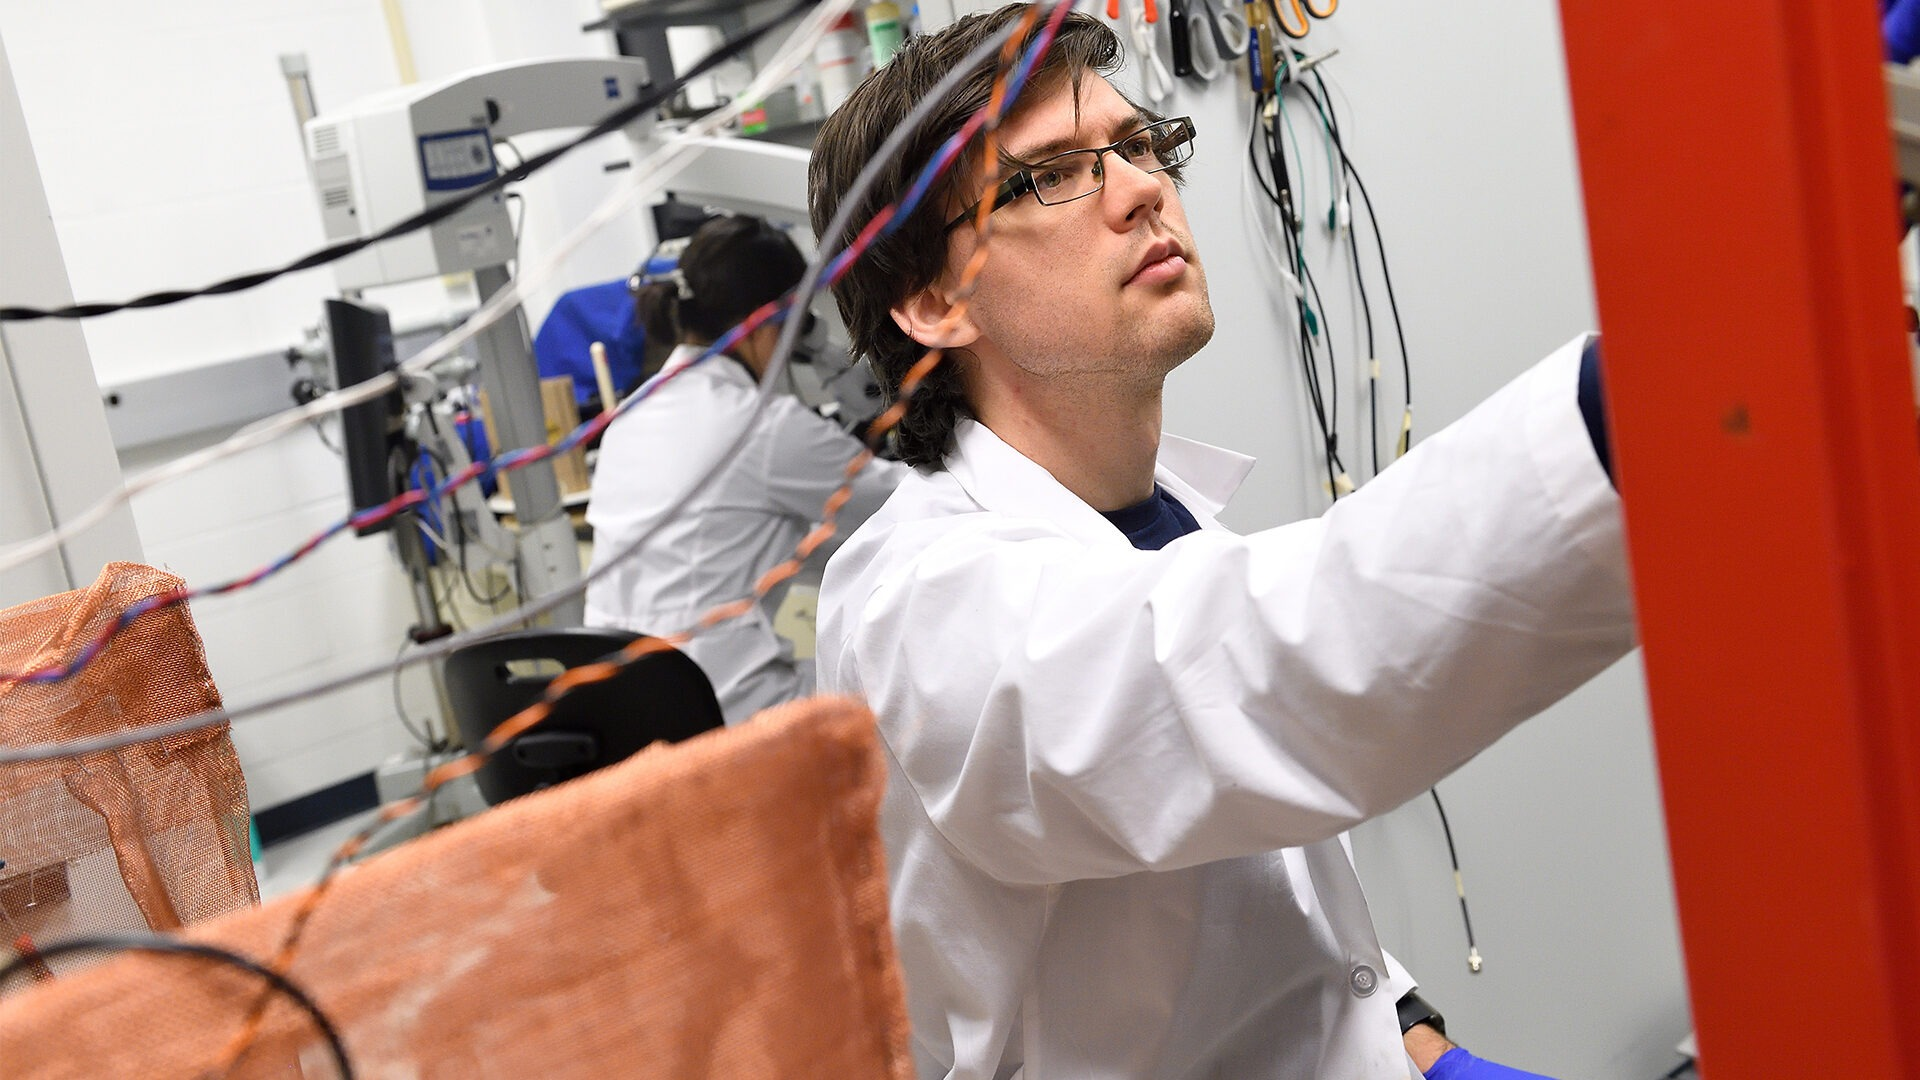 A male graduate student works in the lab amongst lots of wires.